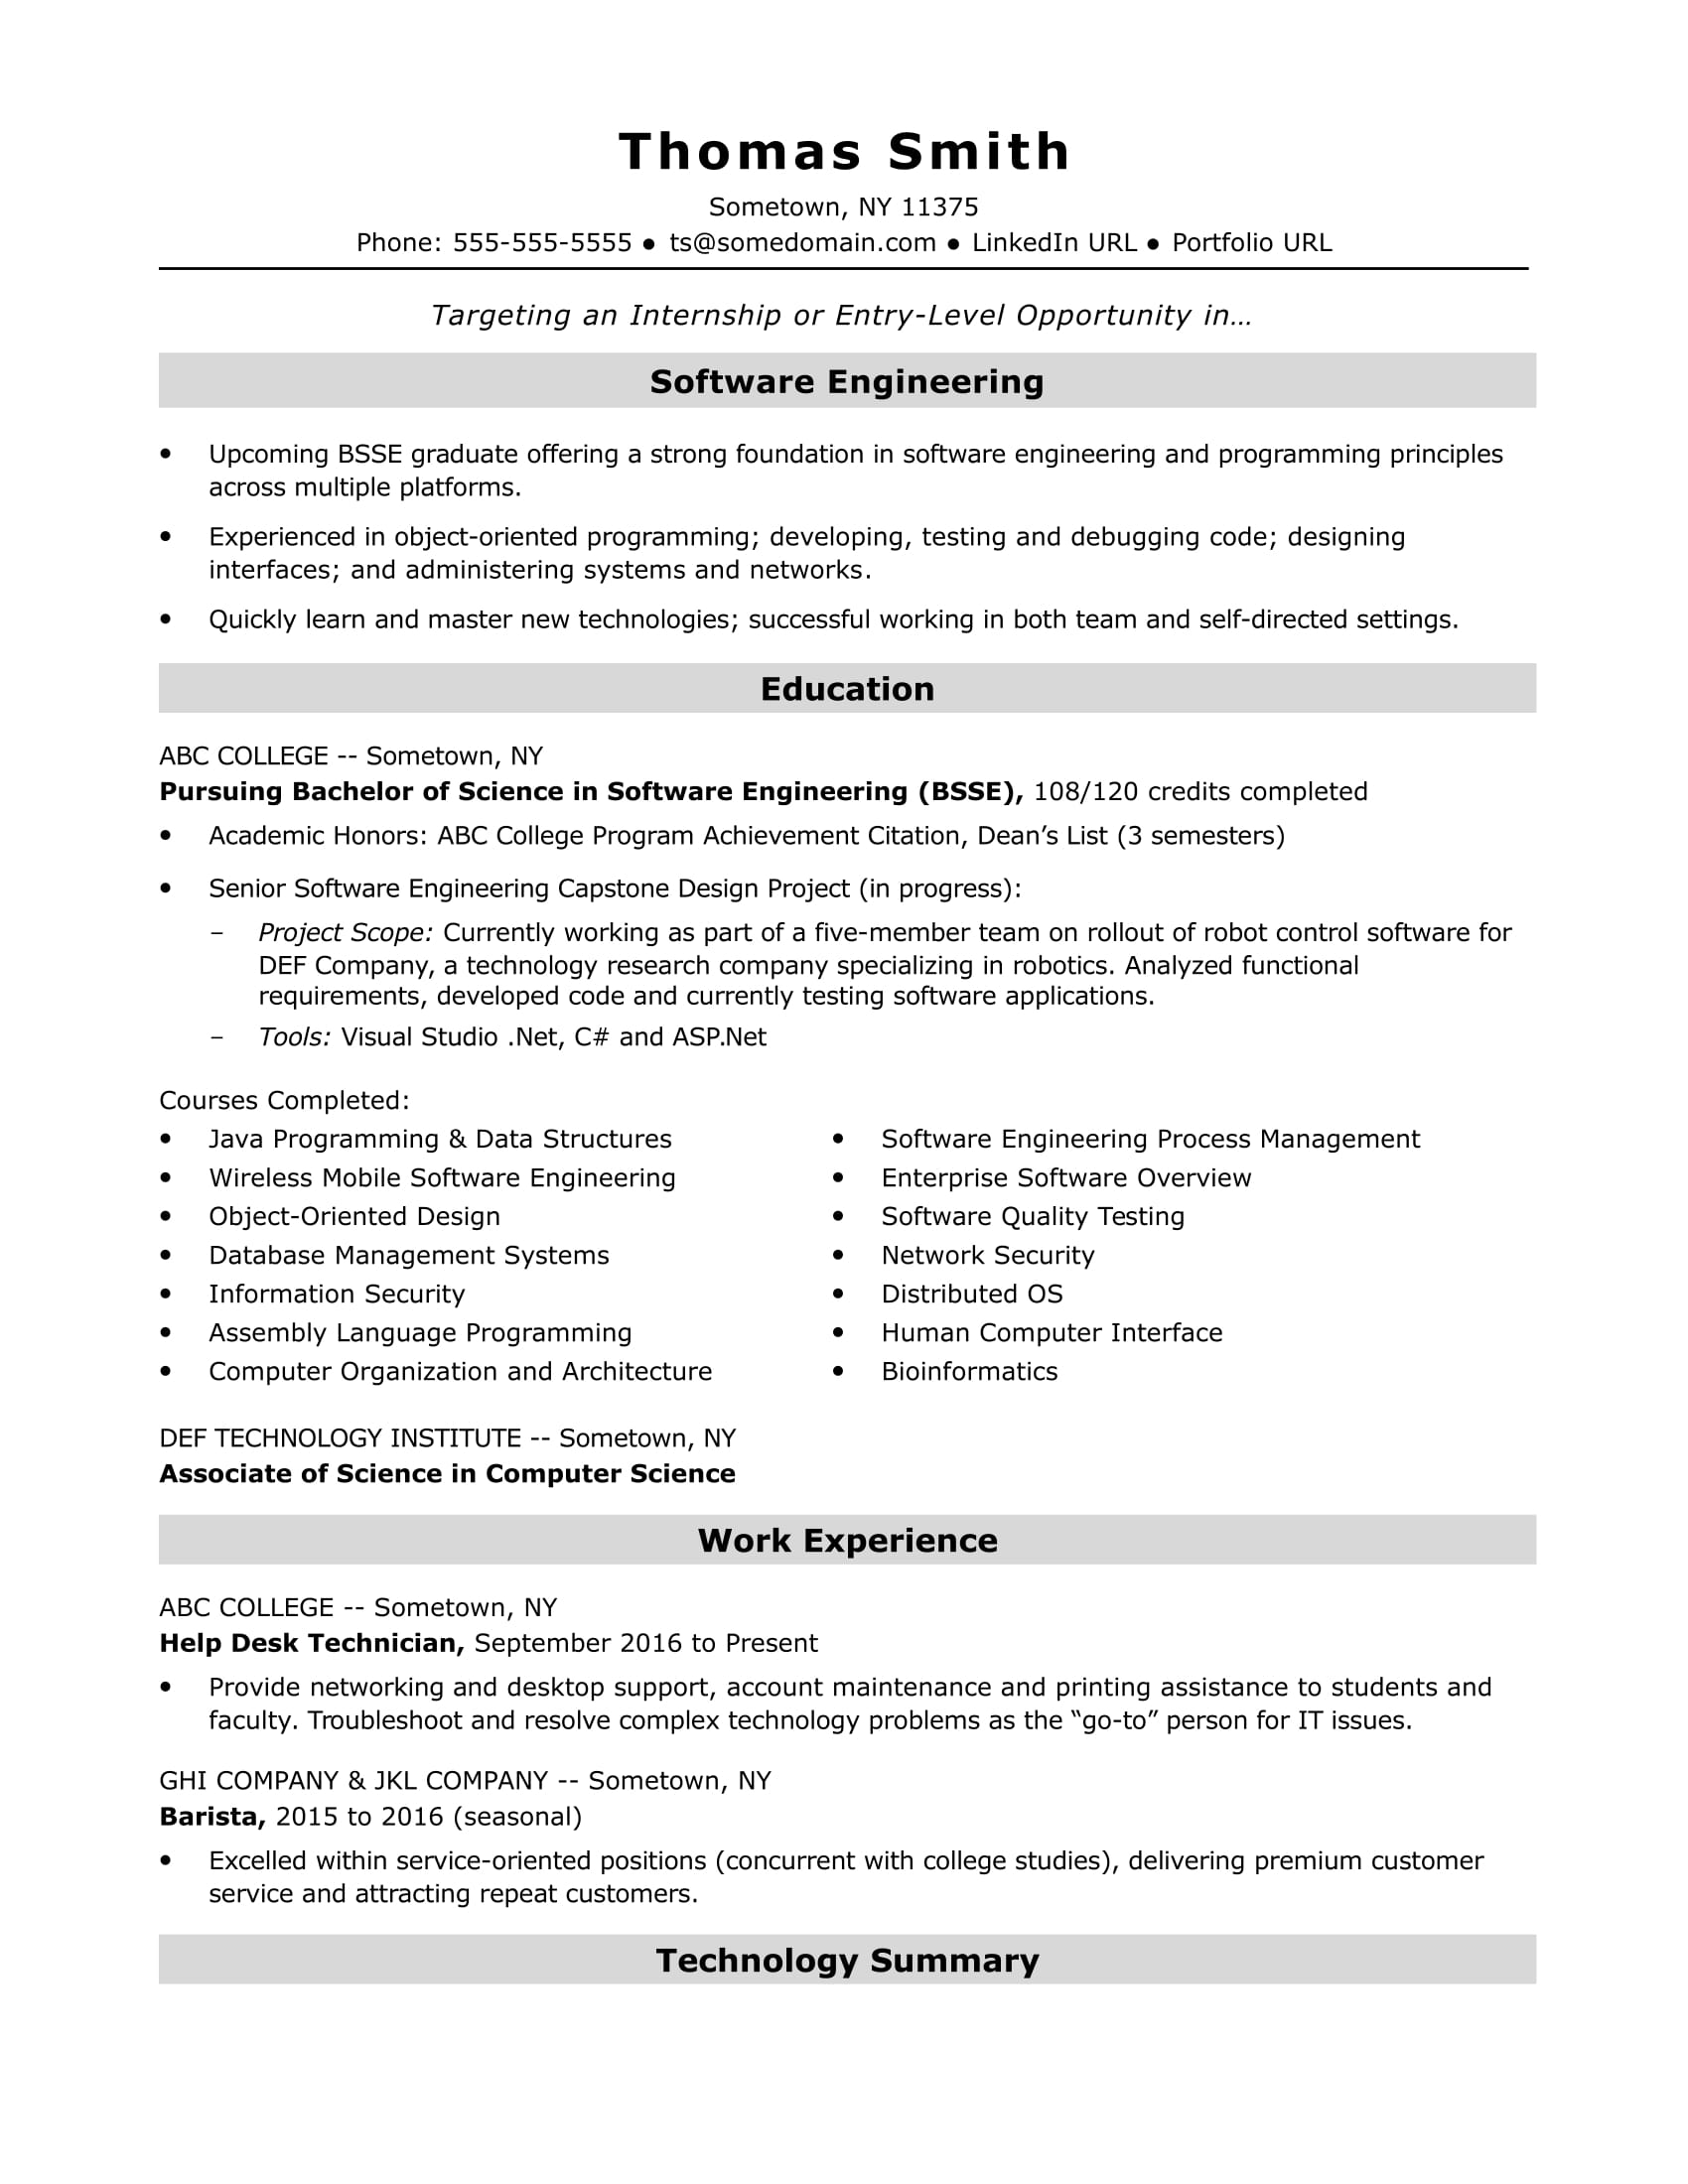 Computer engineering phd resume